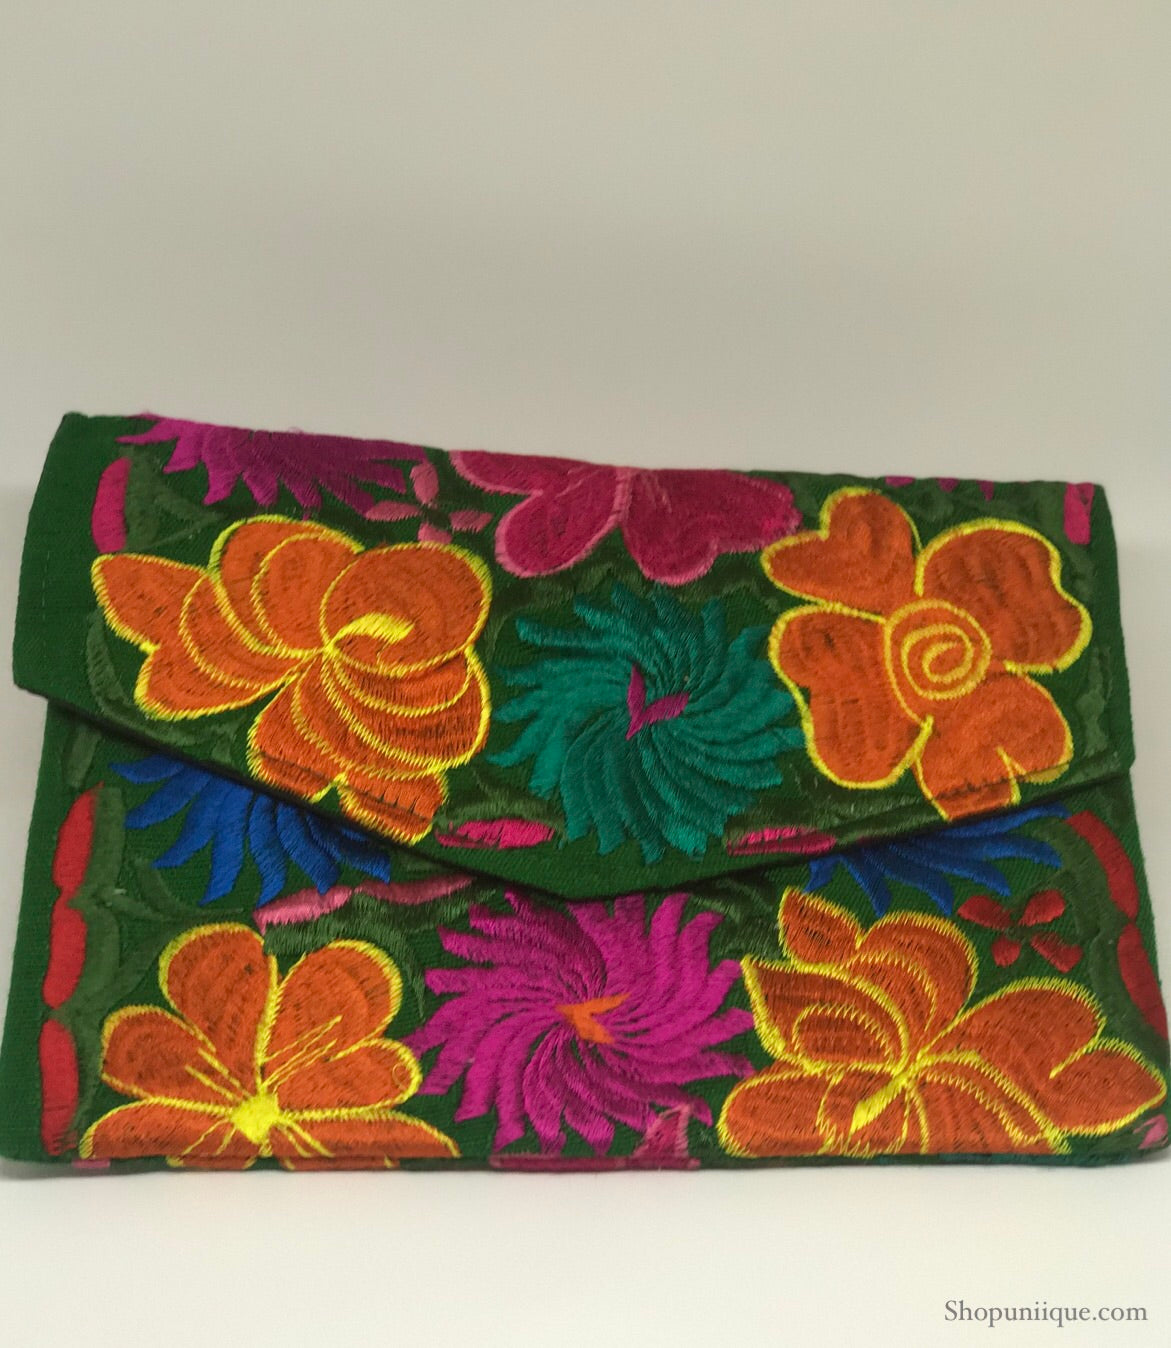 Medium Green Clutch